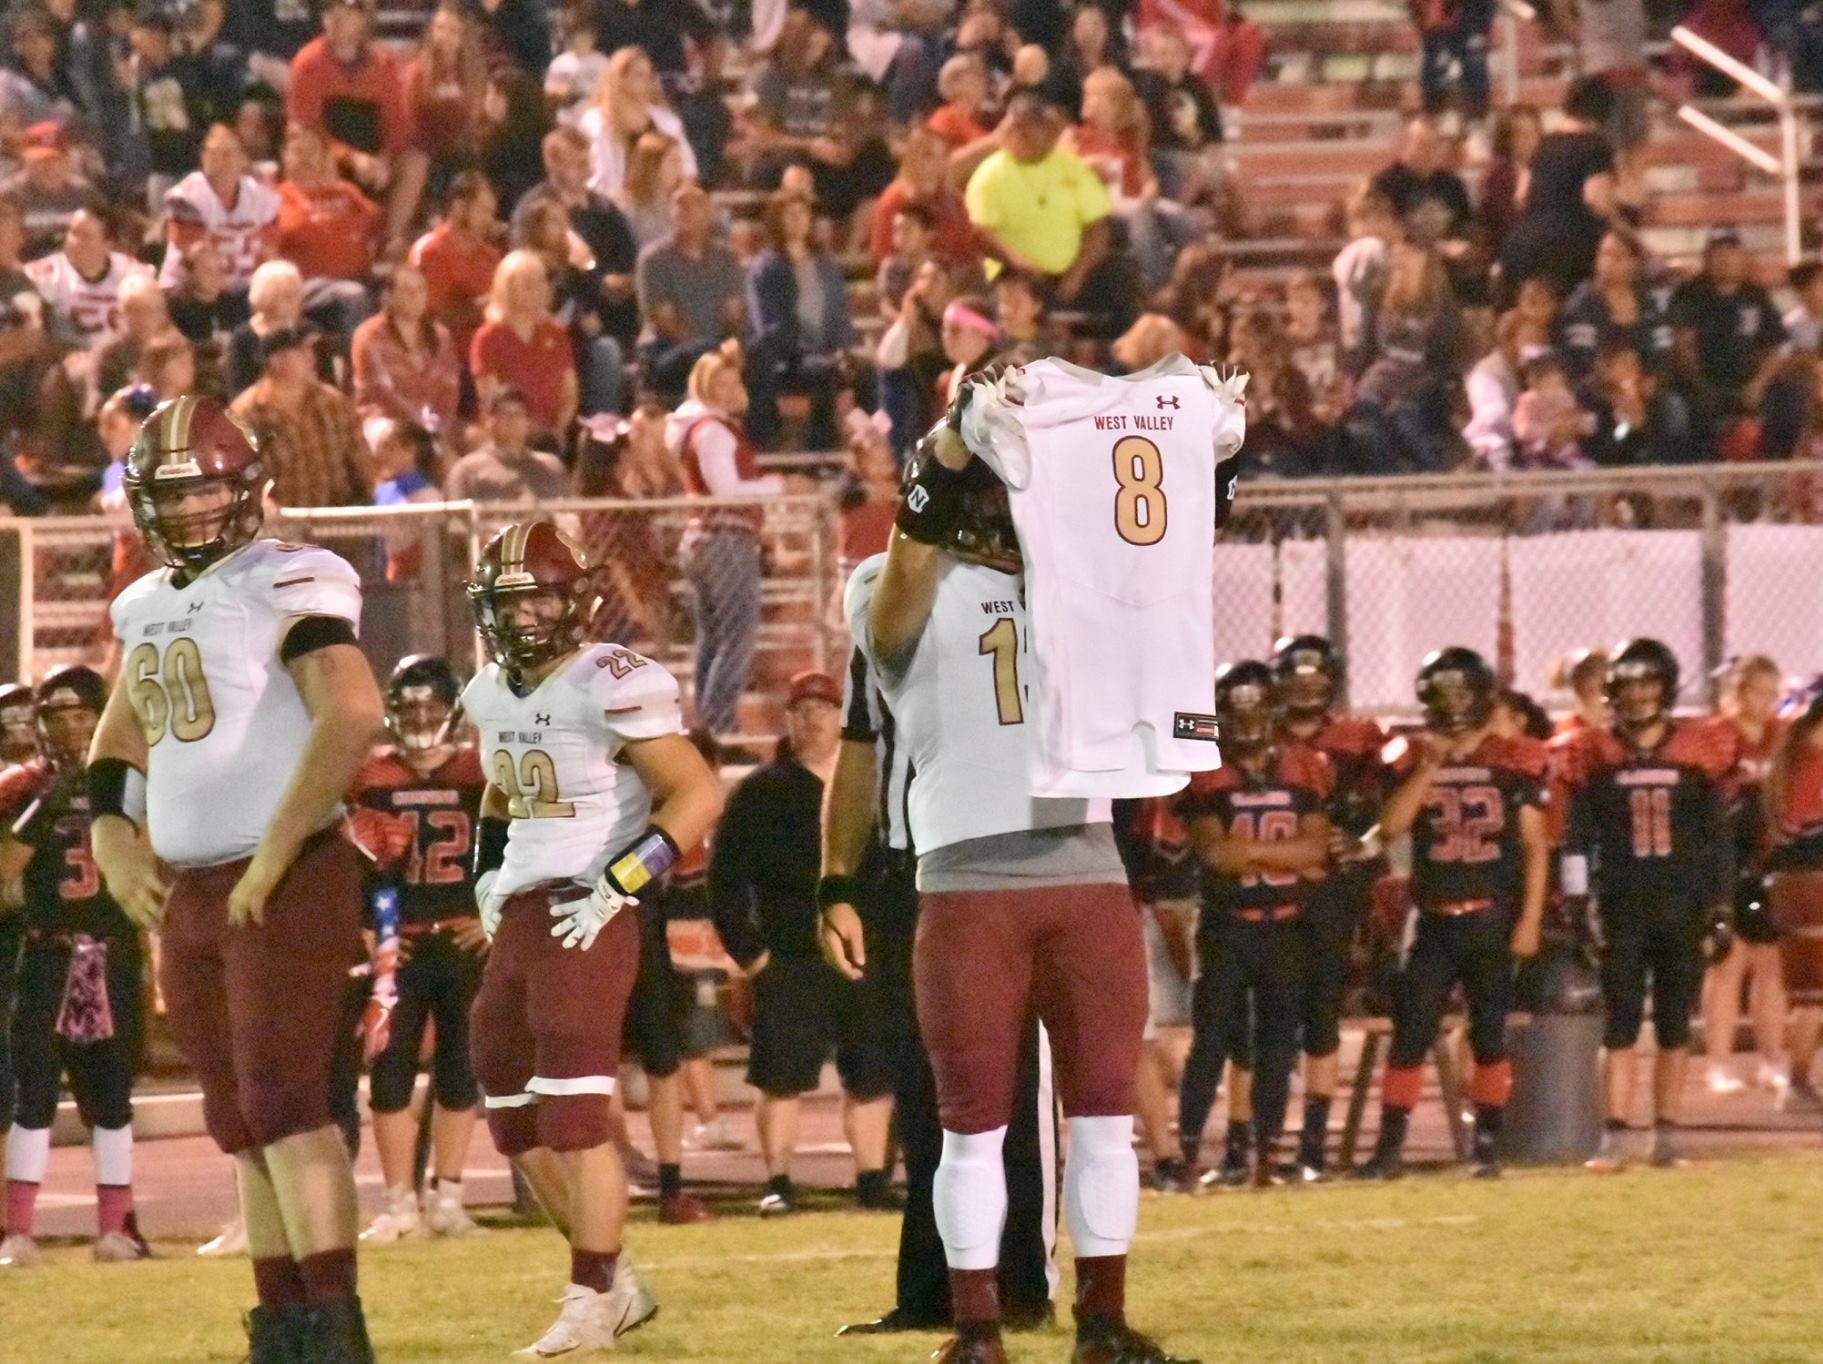 West Valley's Bailey Sulzer holds up Tyson Wacker's jersey before the Eagles' first defensive play of the game. Wacker, a junior defensive end, was injured in a vehicle crash on Oct. 18  died as a result of his injuries the following Monday.